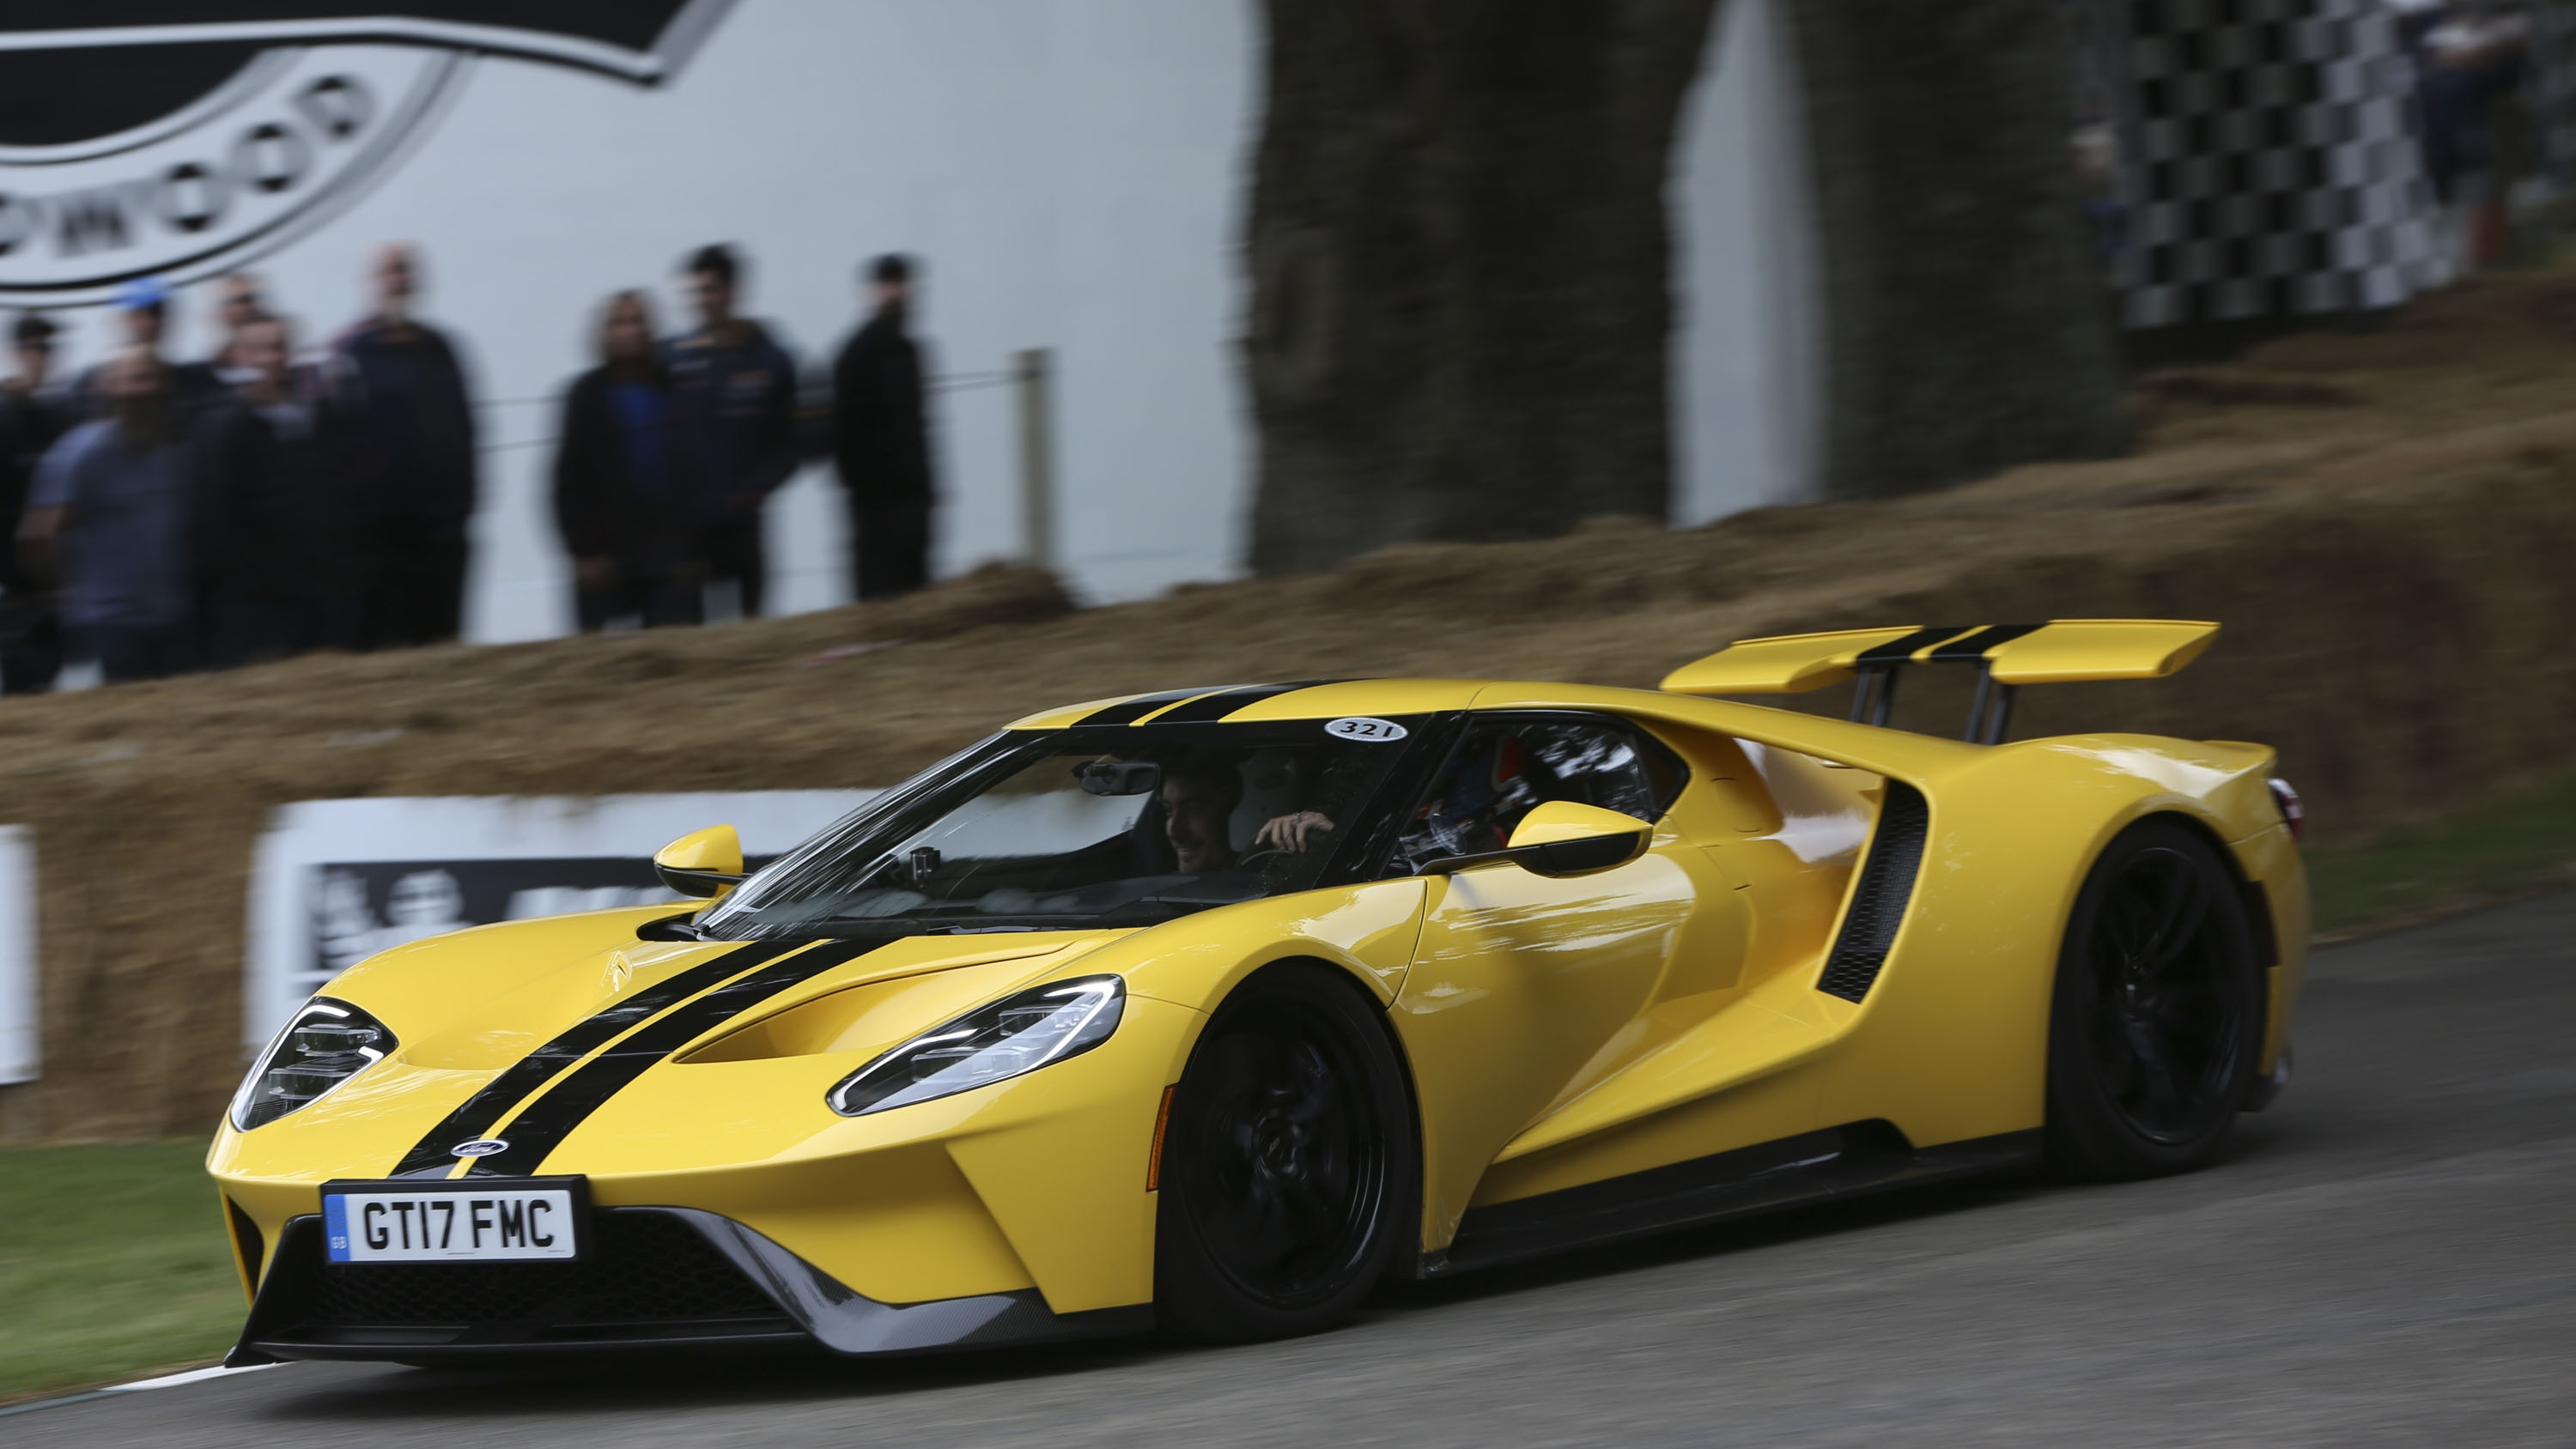 Watch The 2017 Goodwood Festival Of Speed Live Streaming Video